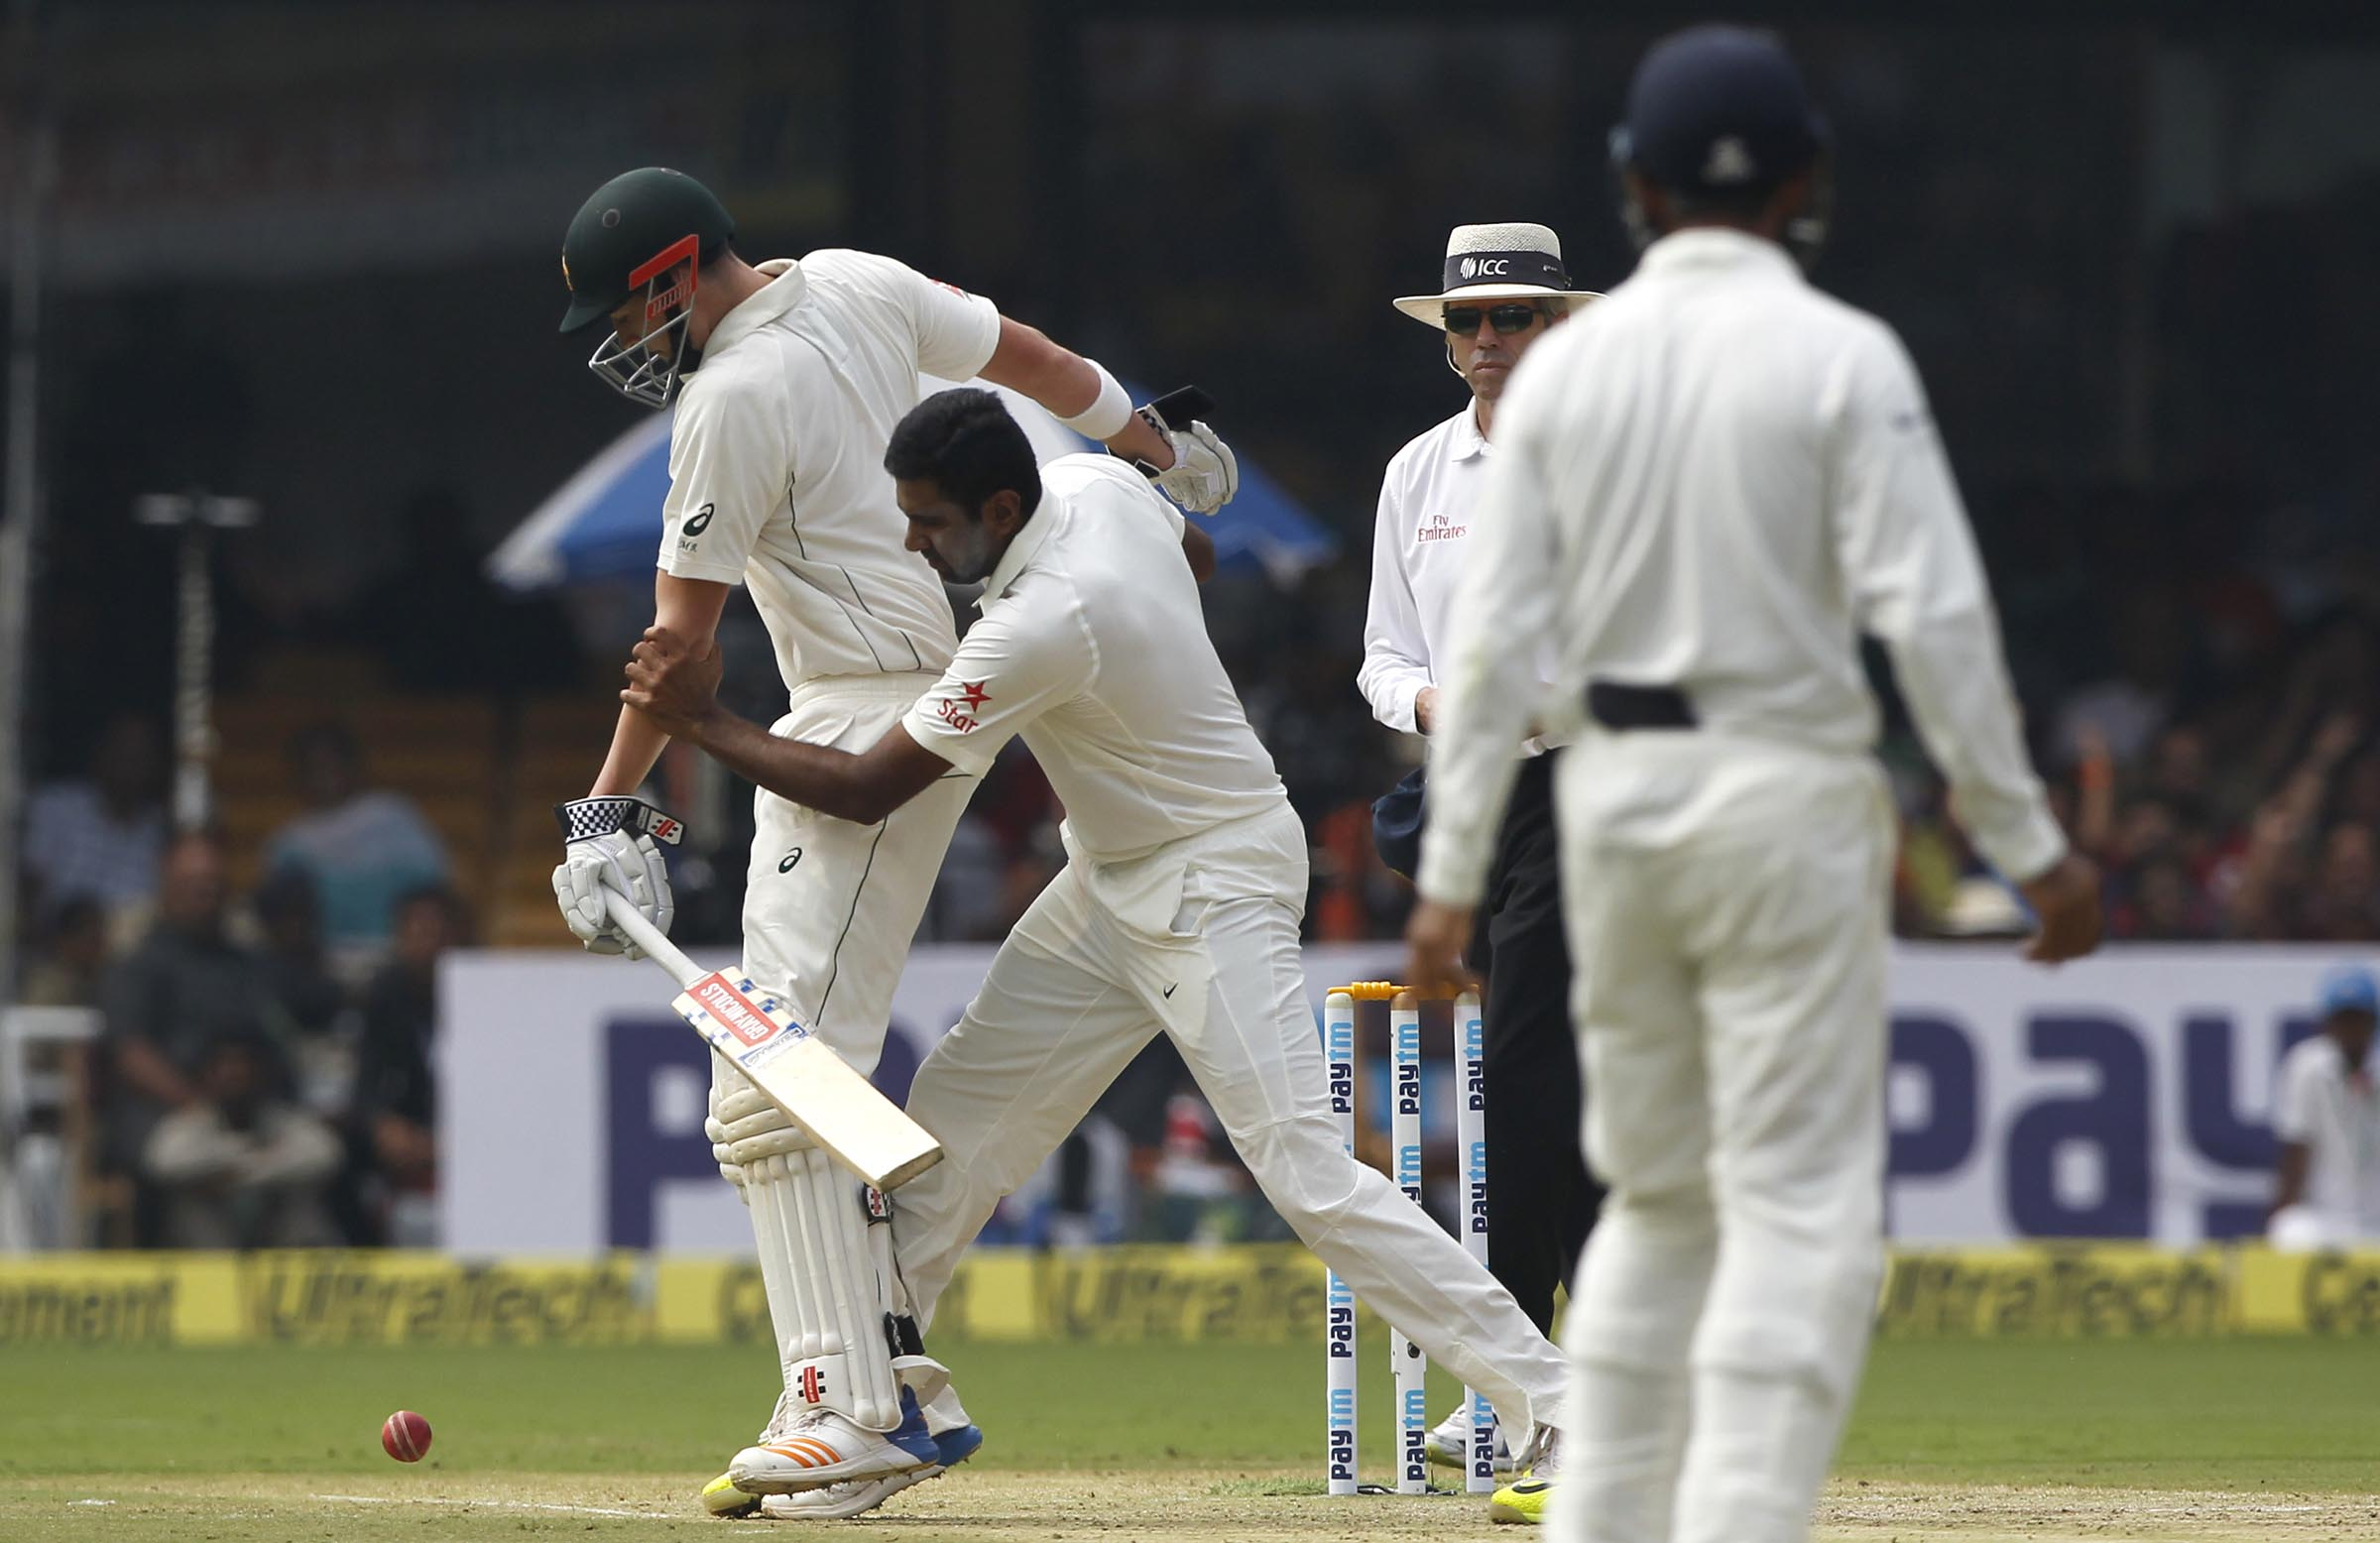 Renshaw and Ashwin collide at the non-striker's end // BCCI